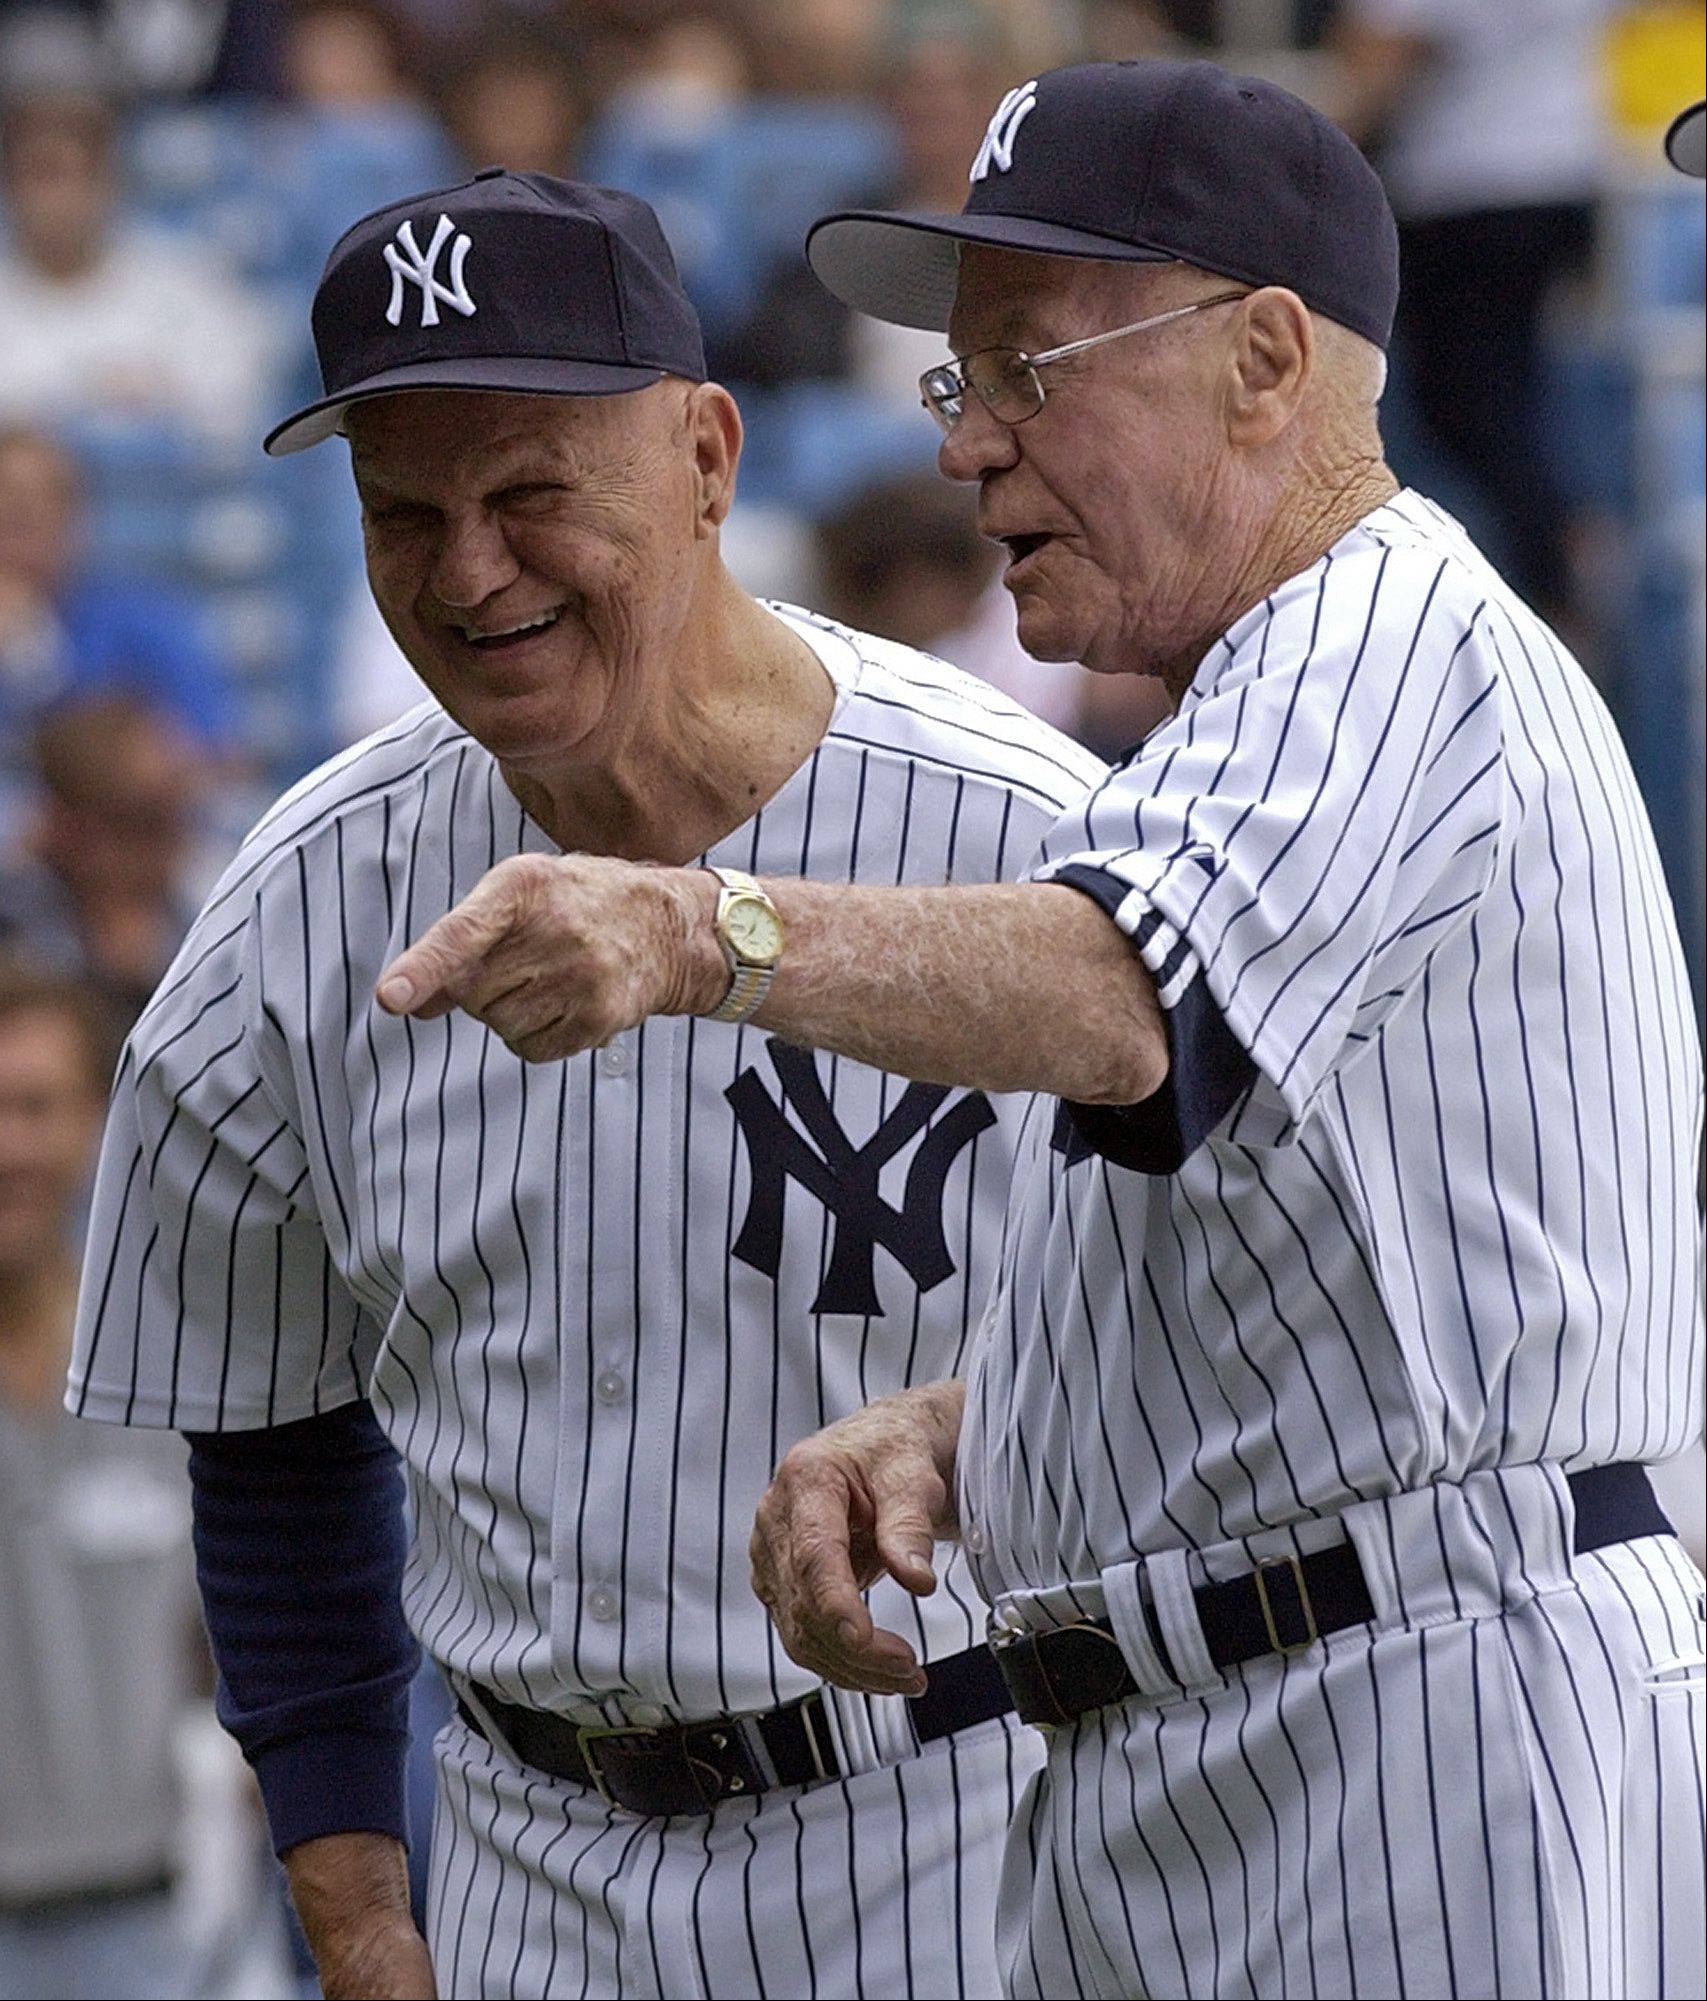 New York Yankees' Hank Bauer, right, and Moos Skowron are shown during old-timer's day at New York's Yankee Stadium in this June 24, 2006 file photo.